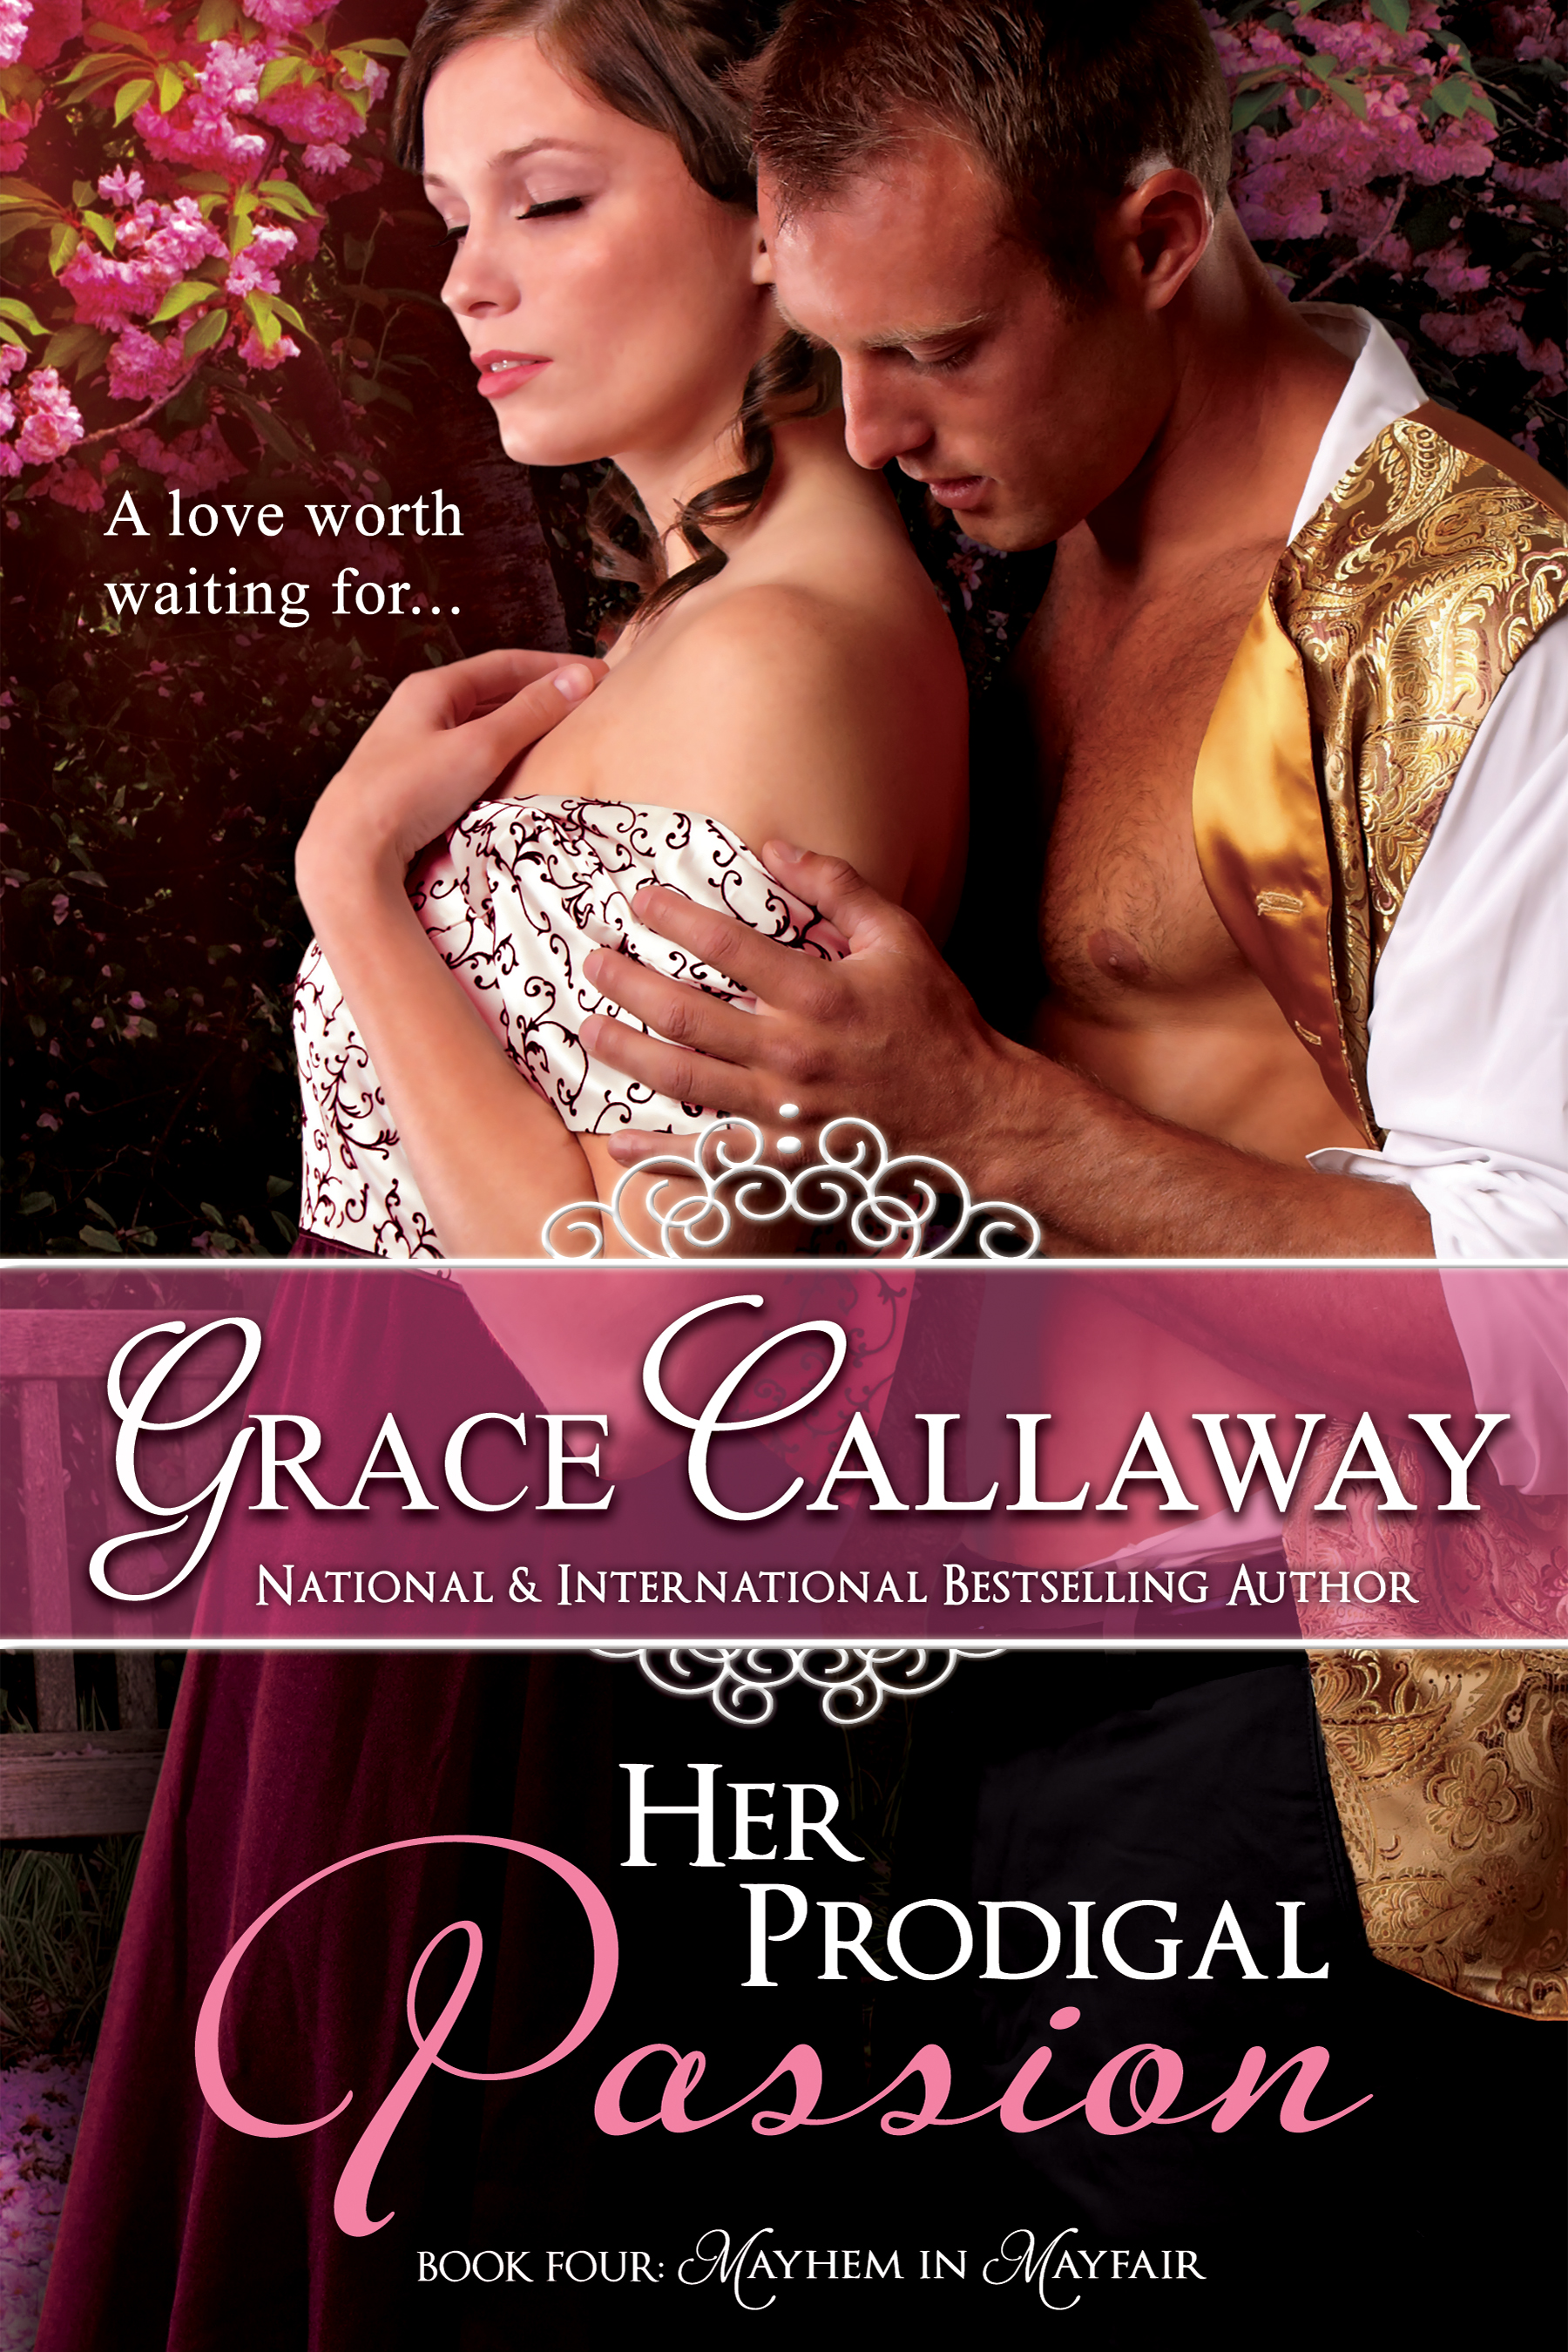 Grace Callaway - Her Prodigal Passion (Mayhem in Mayfair #4)